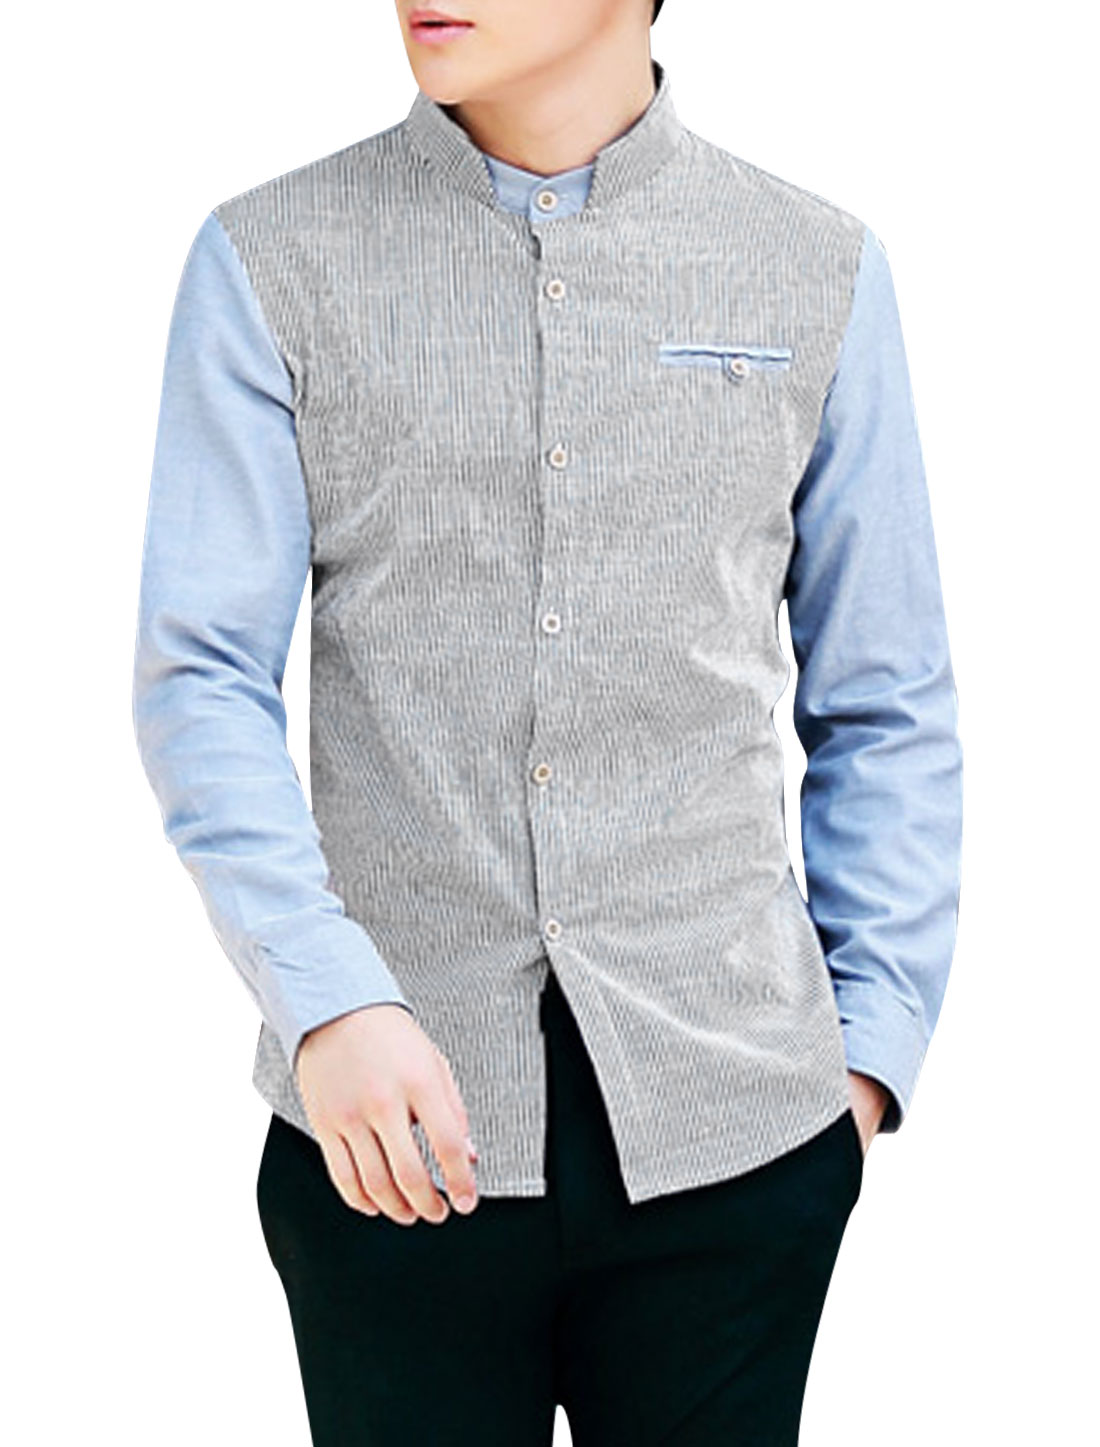 Men Stand Collar Stripes Pattern Color Block Casual Shirt Baby Blue Gray M